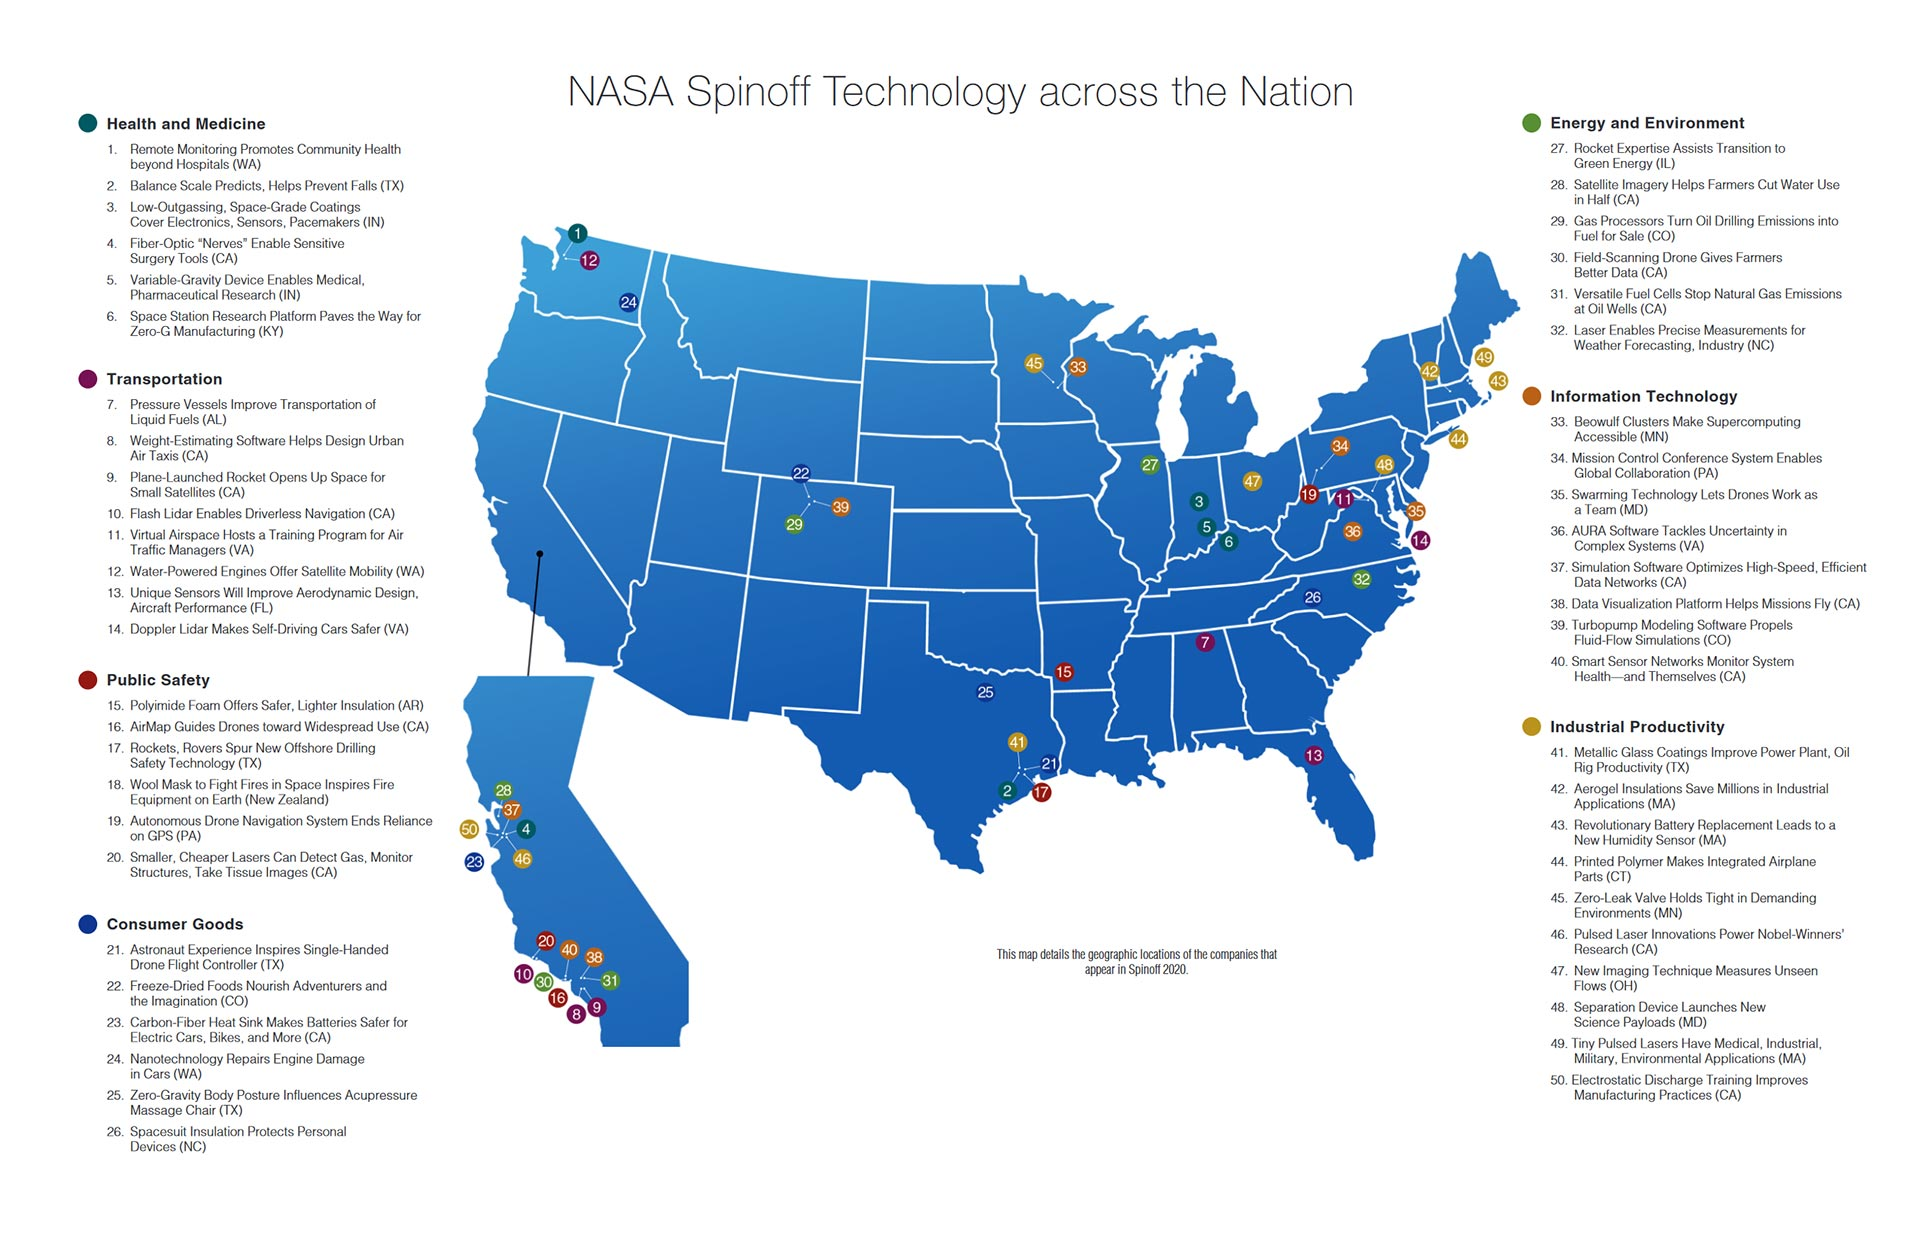 NASA Spinoff 2020 Map